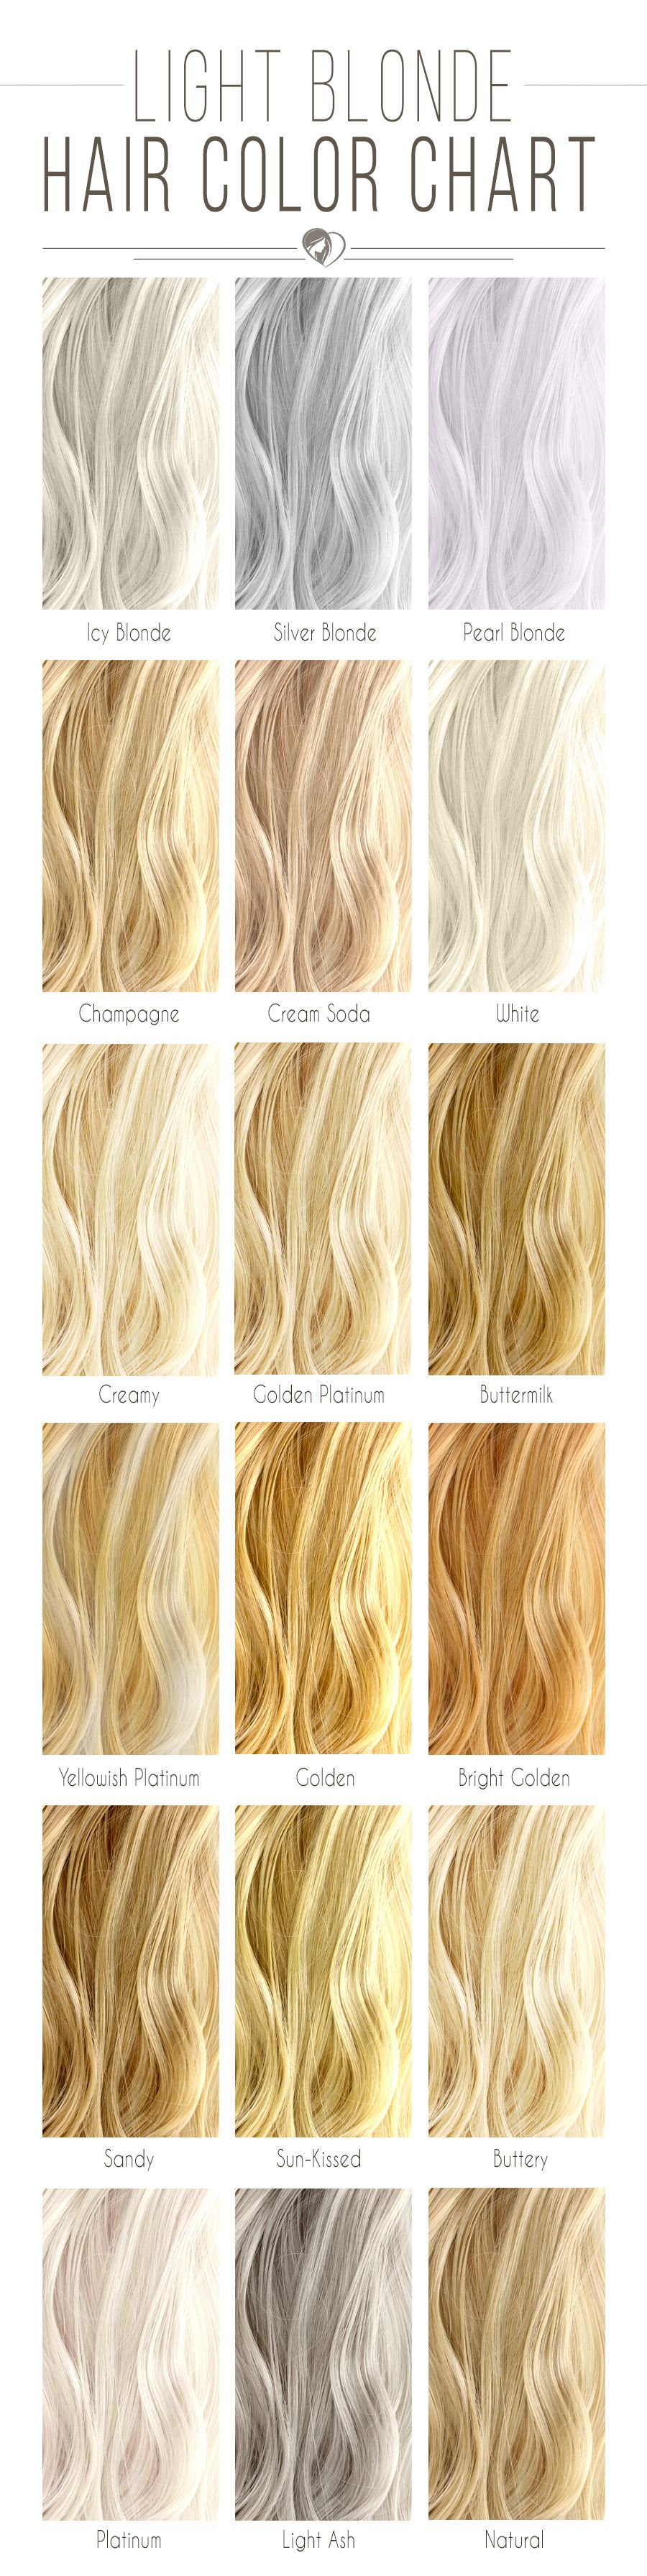 Blonde Hair Color Chart To Find The Right Shade For You Hair